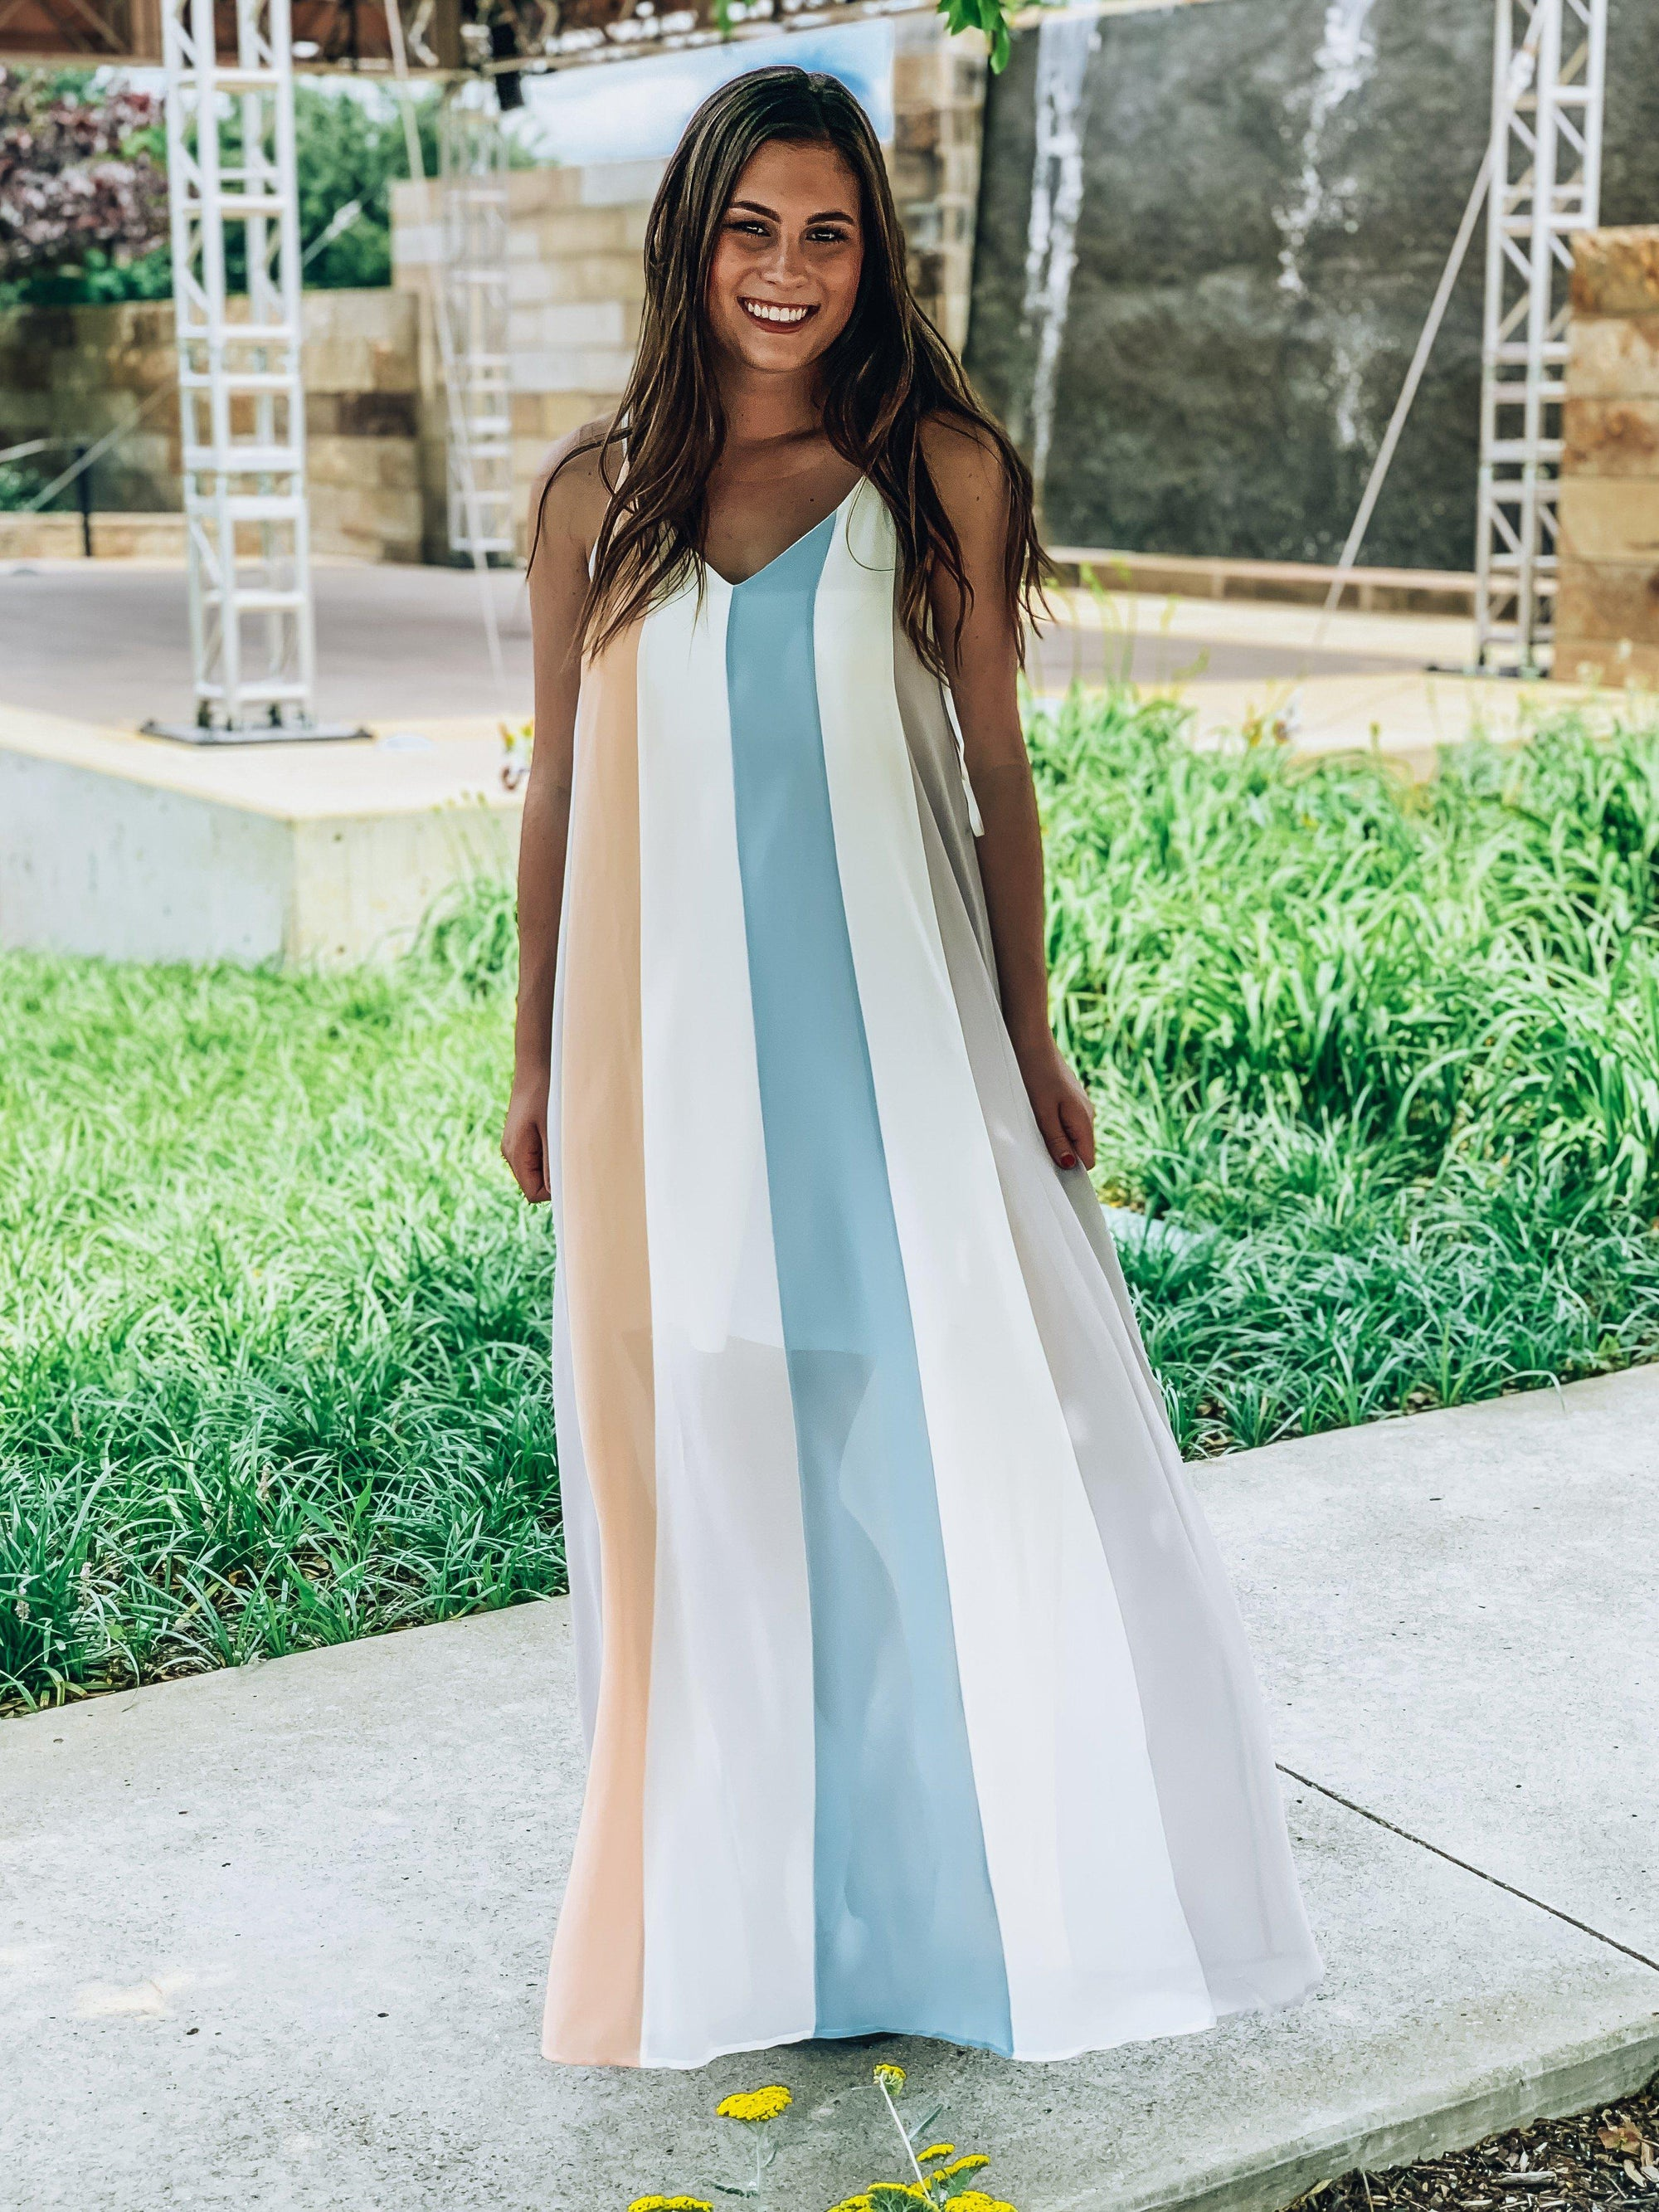 Seaside Serenade Maxi Dress-Women's DRESS-New Arrivals-Runway Seven